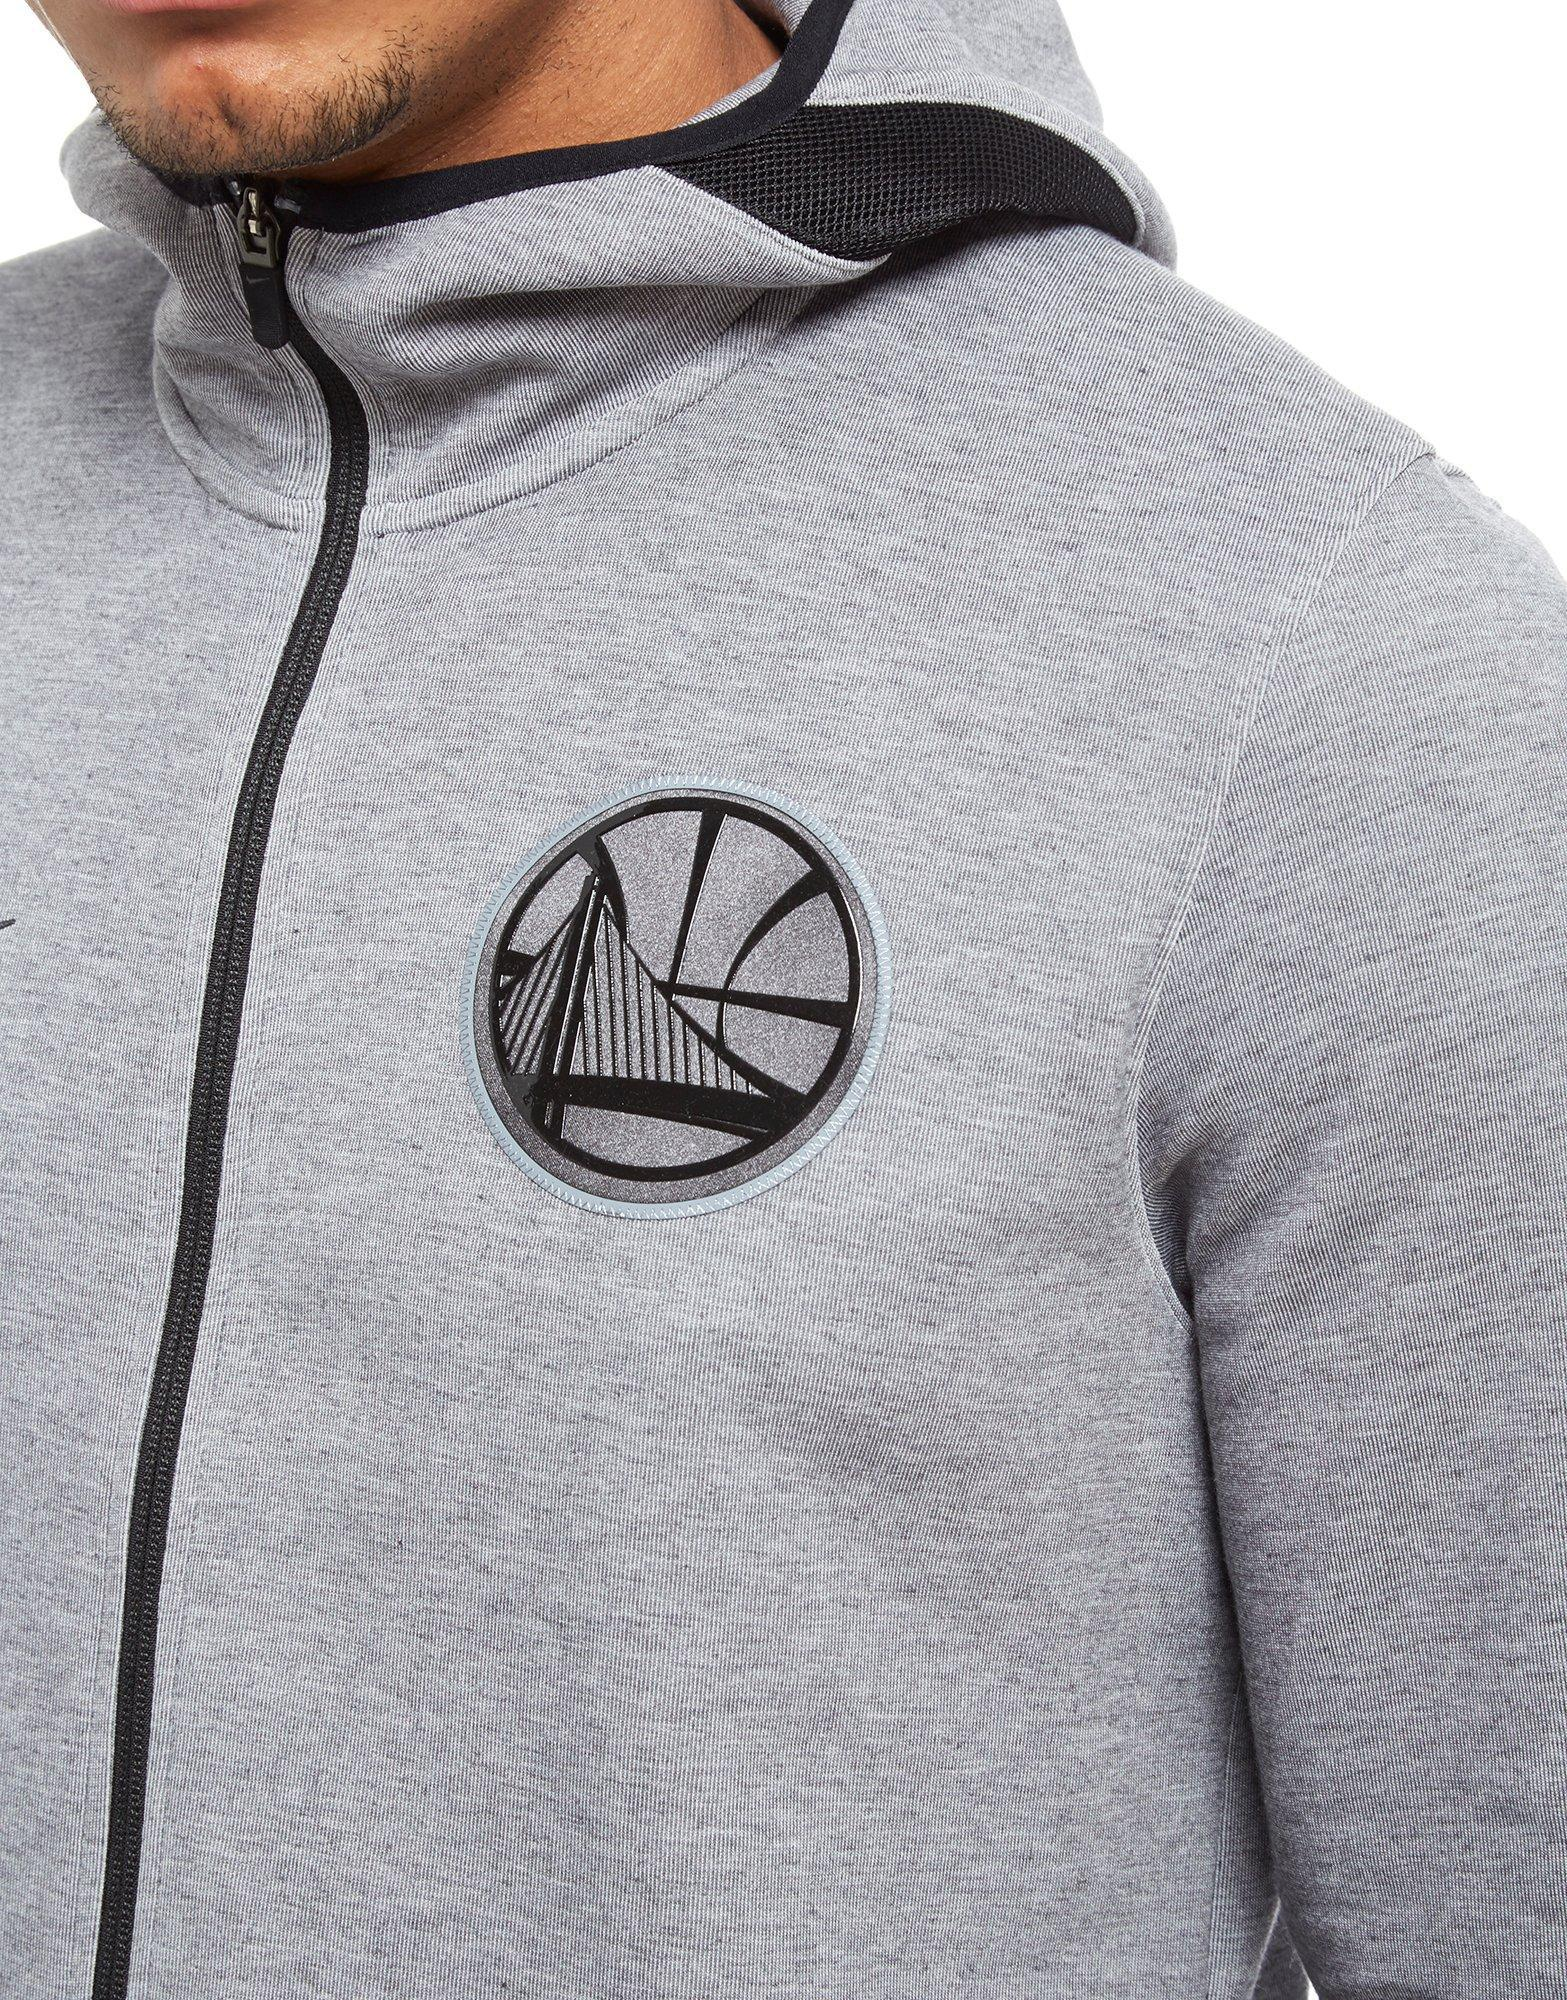 ff6f4ae4fa5 Lyst - Nike Nba Golden State Warriors Therma Flex Hoodie in Gray for Men